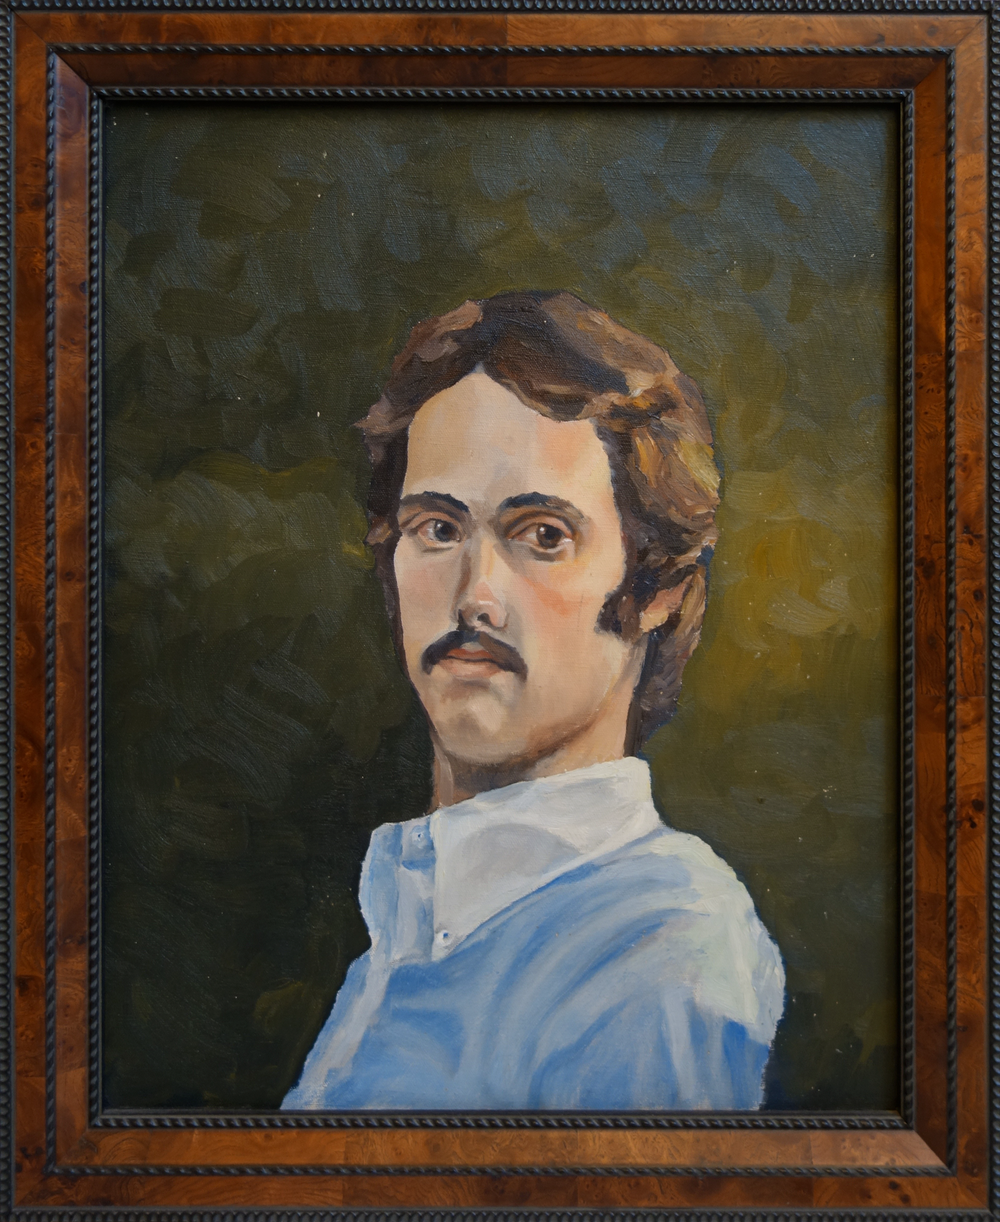 "Artist as a Young Man   16"" x 20"", oil on canvas  Private collection"